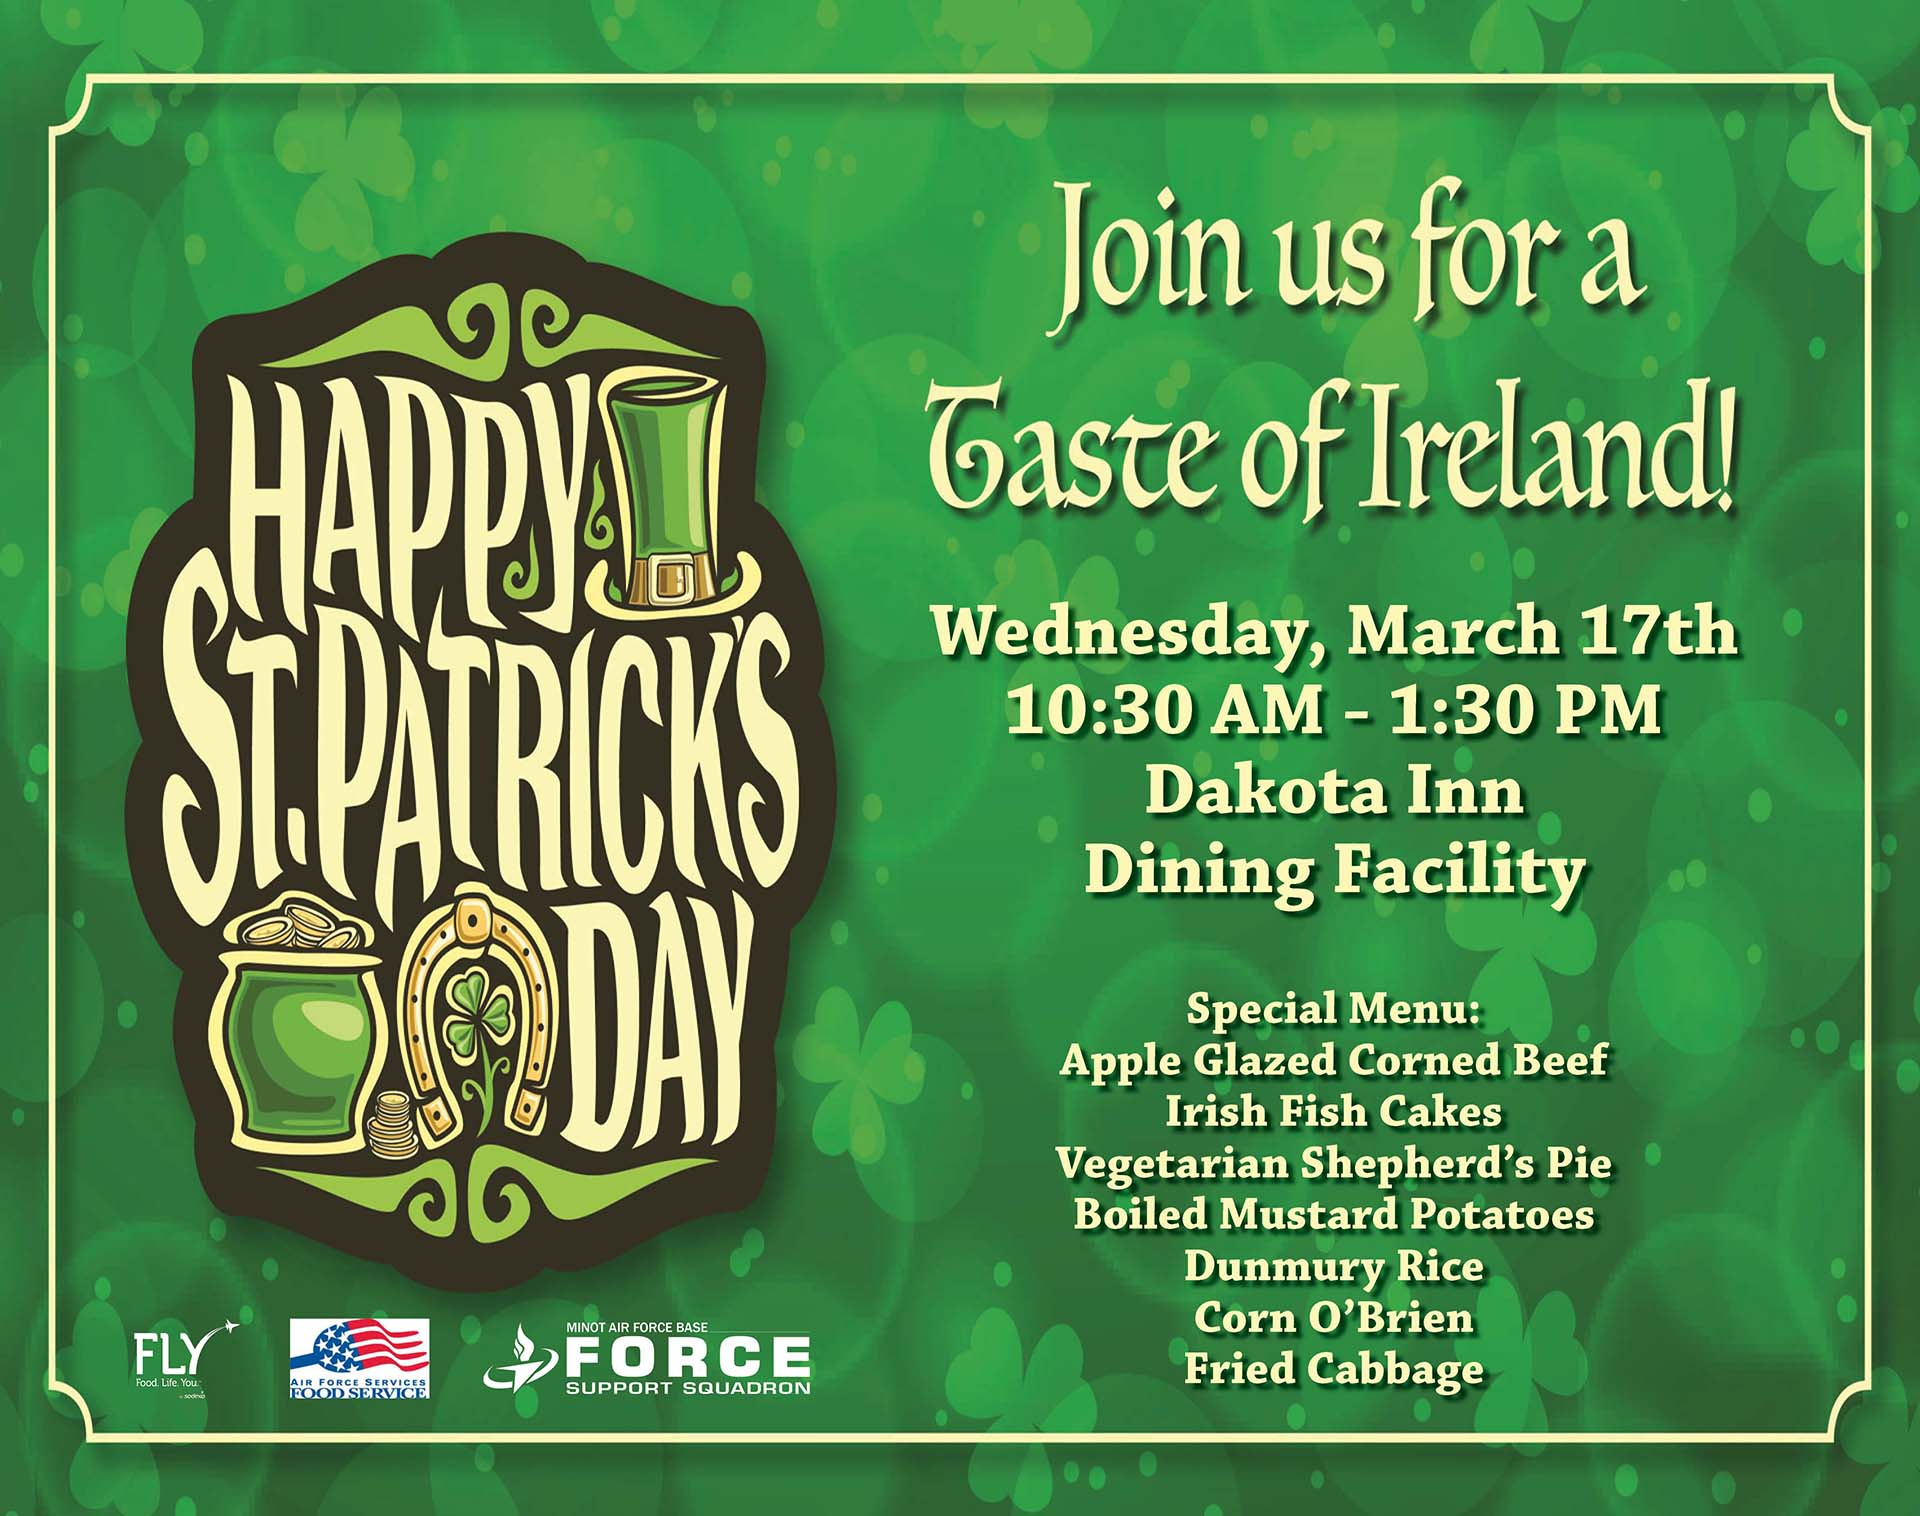 St. Patrick's Day Special Lunch